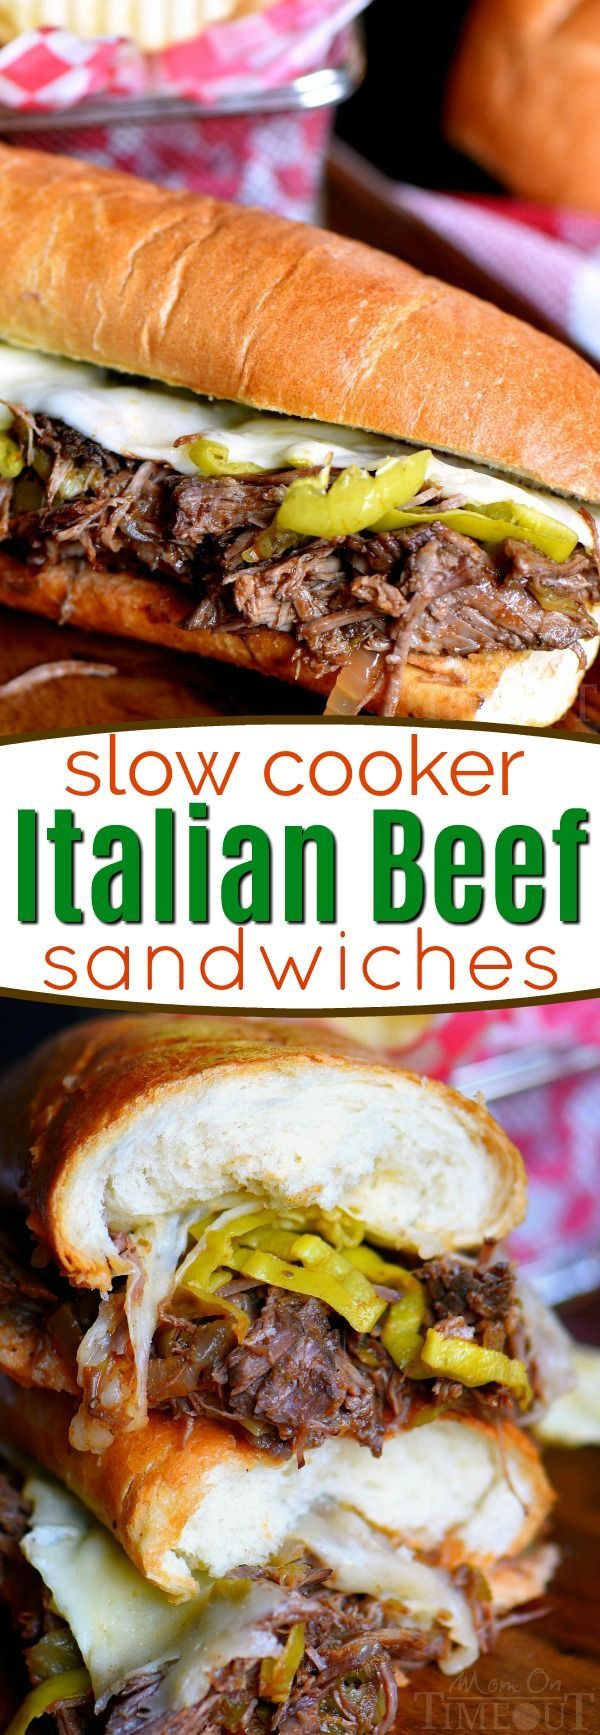 Load up on the delicious flavor of these Slow Cooker Italian Beef Sandwiches! A handful of ingredients are all you need to pull this amazing dinner off. Great for game day or an easy weeknight dinner!